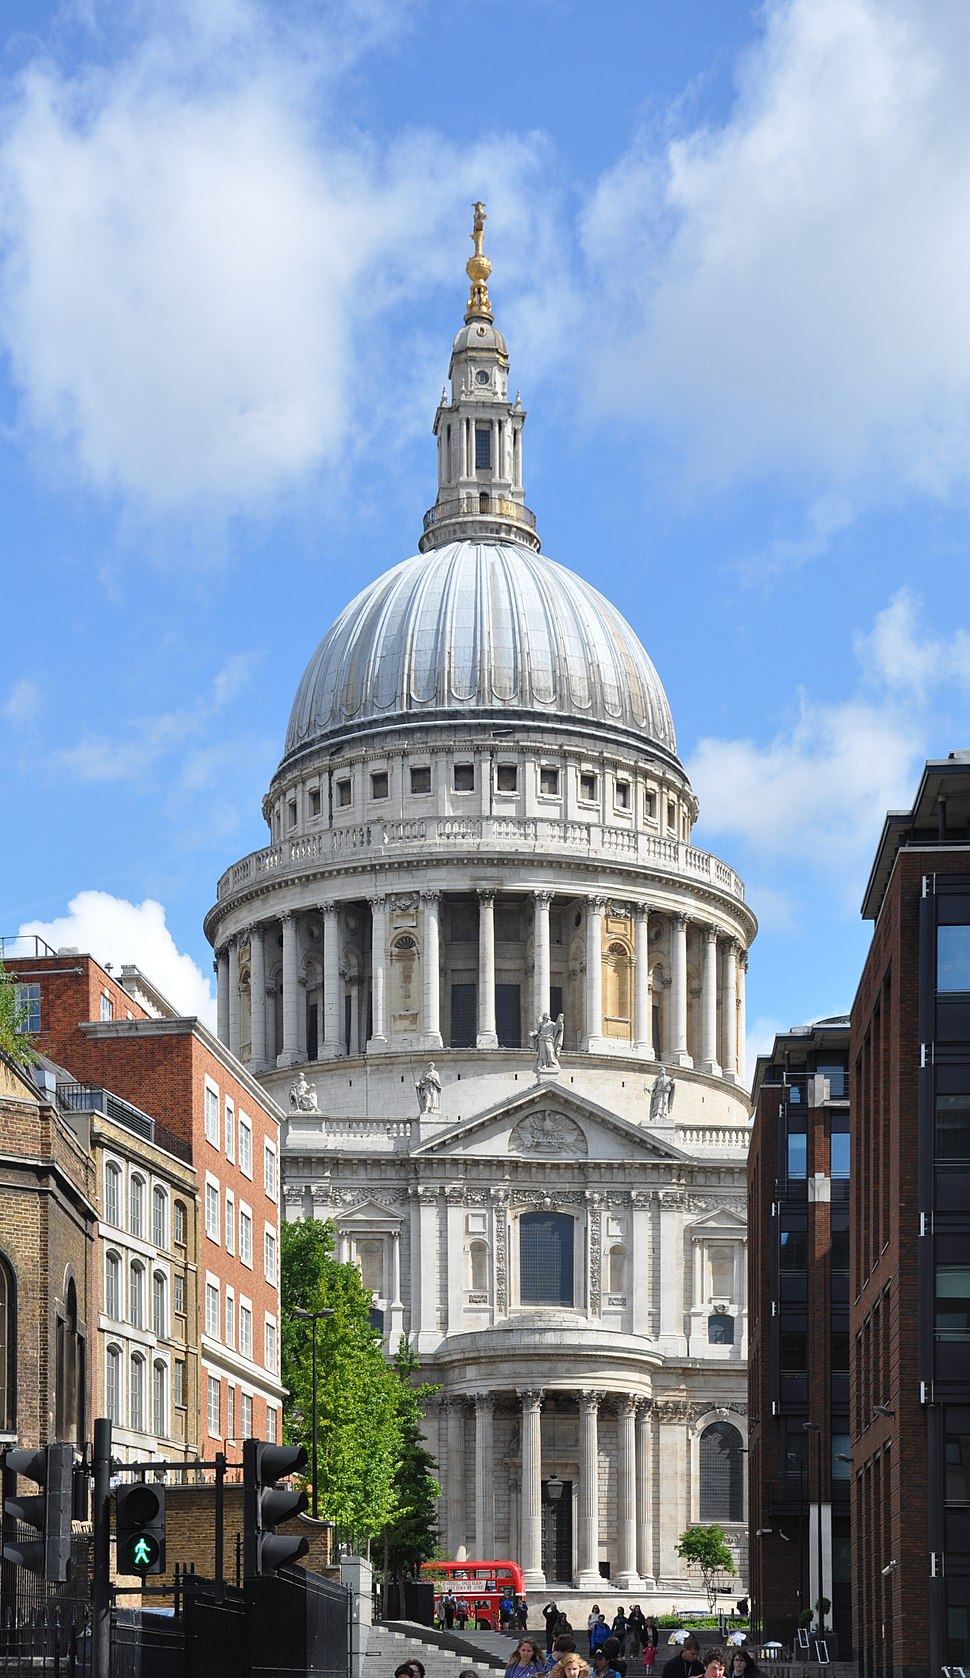 South facade of St Paul's Cathedral 2011 1